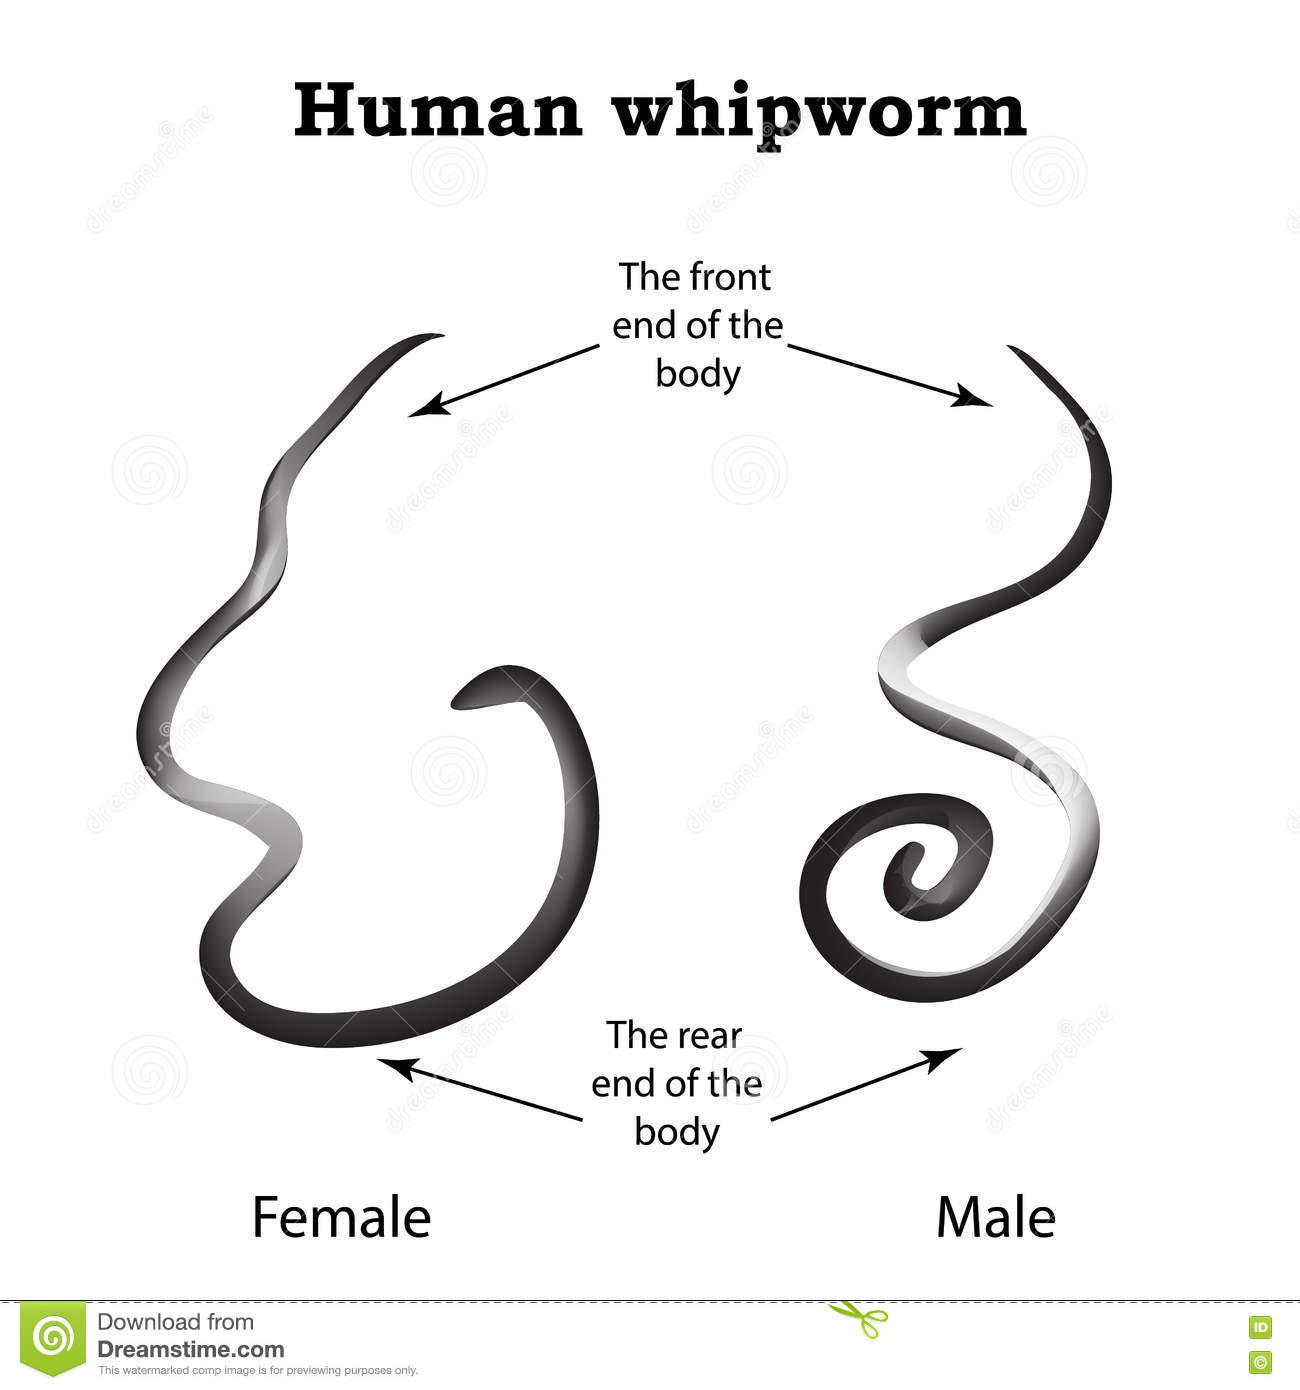 Whipworm Structure Whipworm Females The Structure Of The